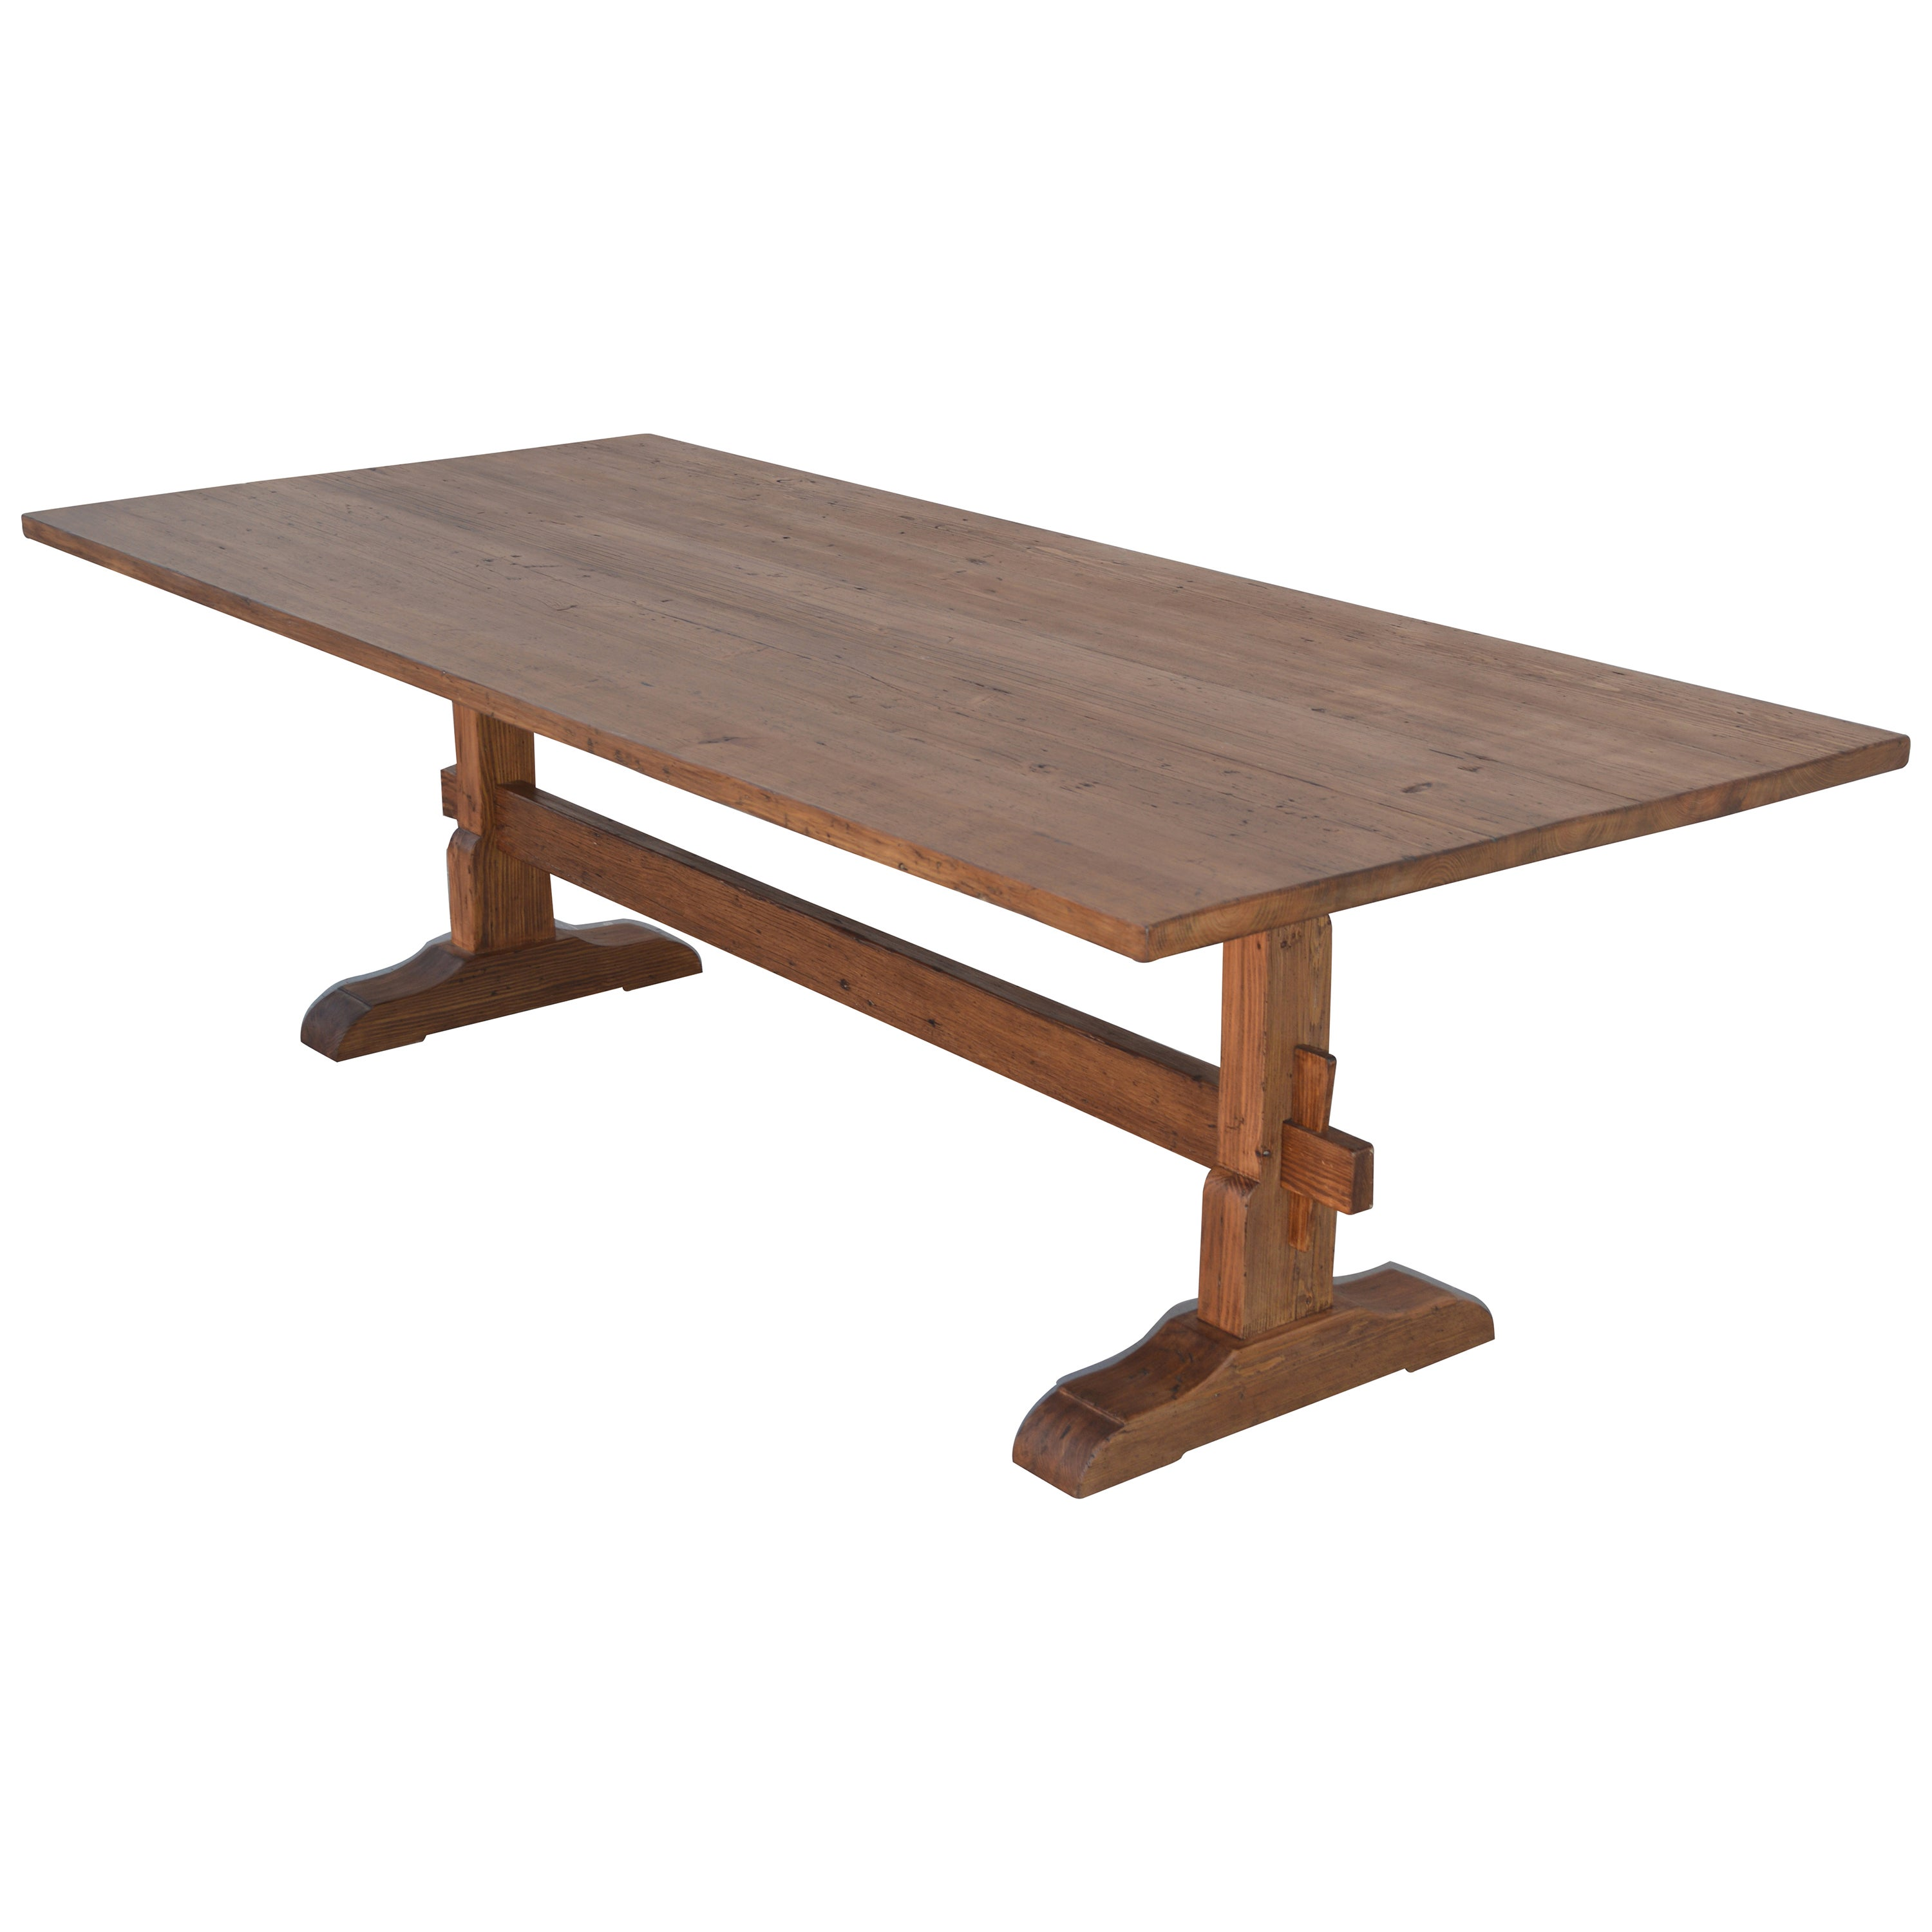 Collapsible Trestle Table in Vintage Pine, Custom Made